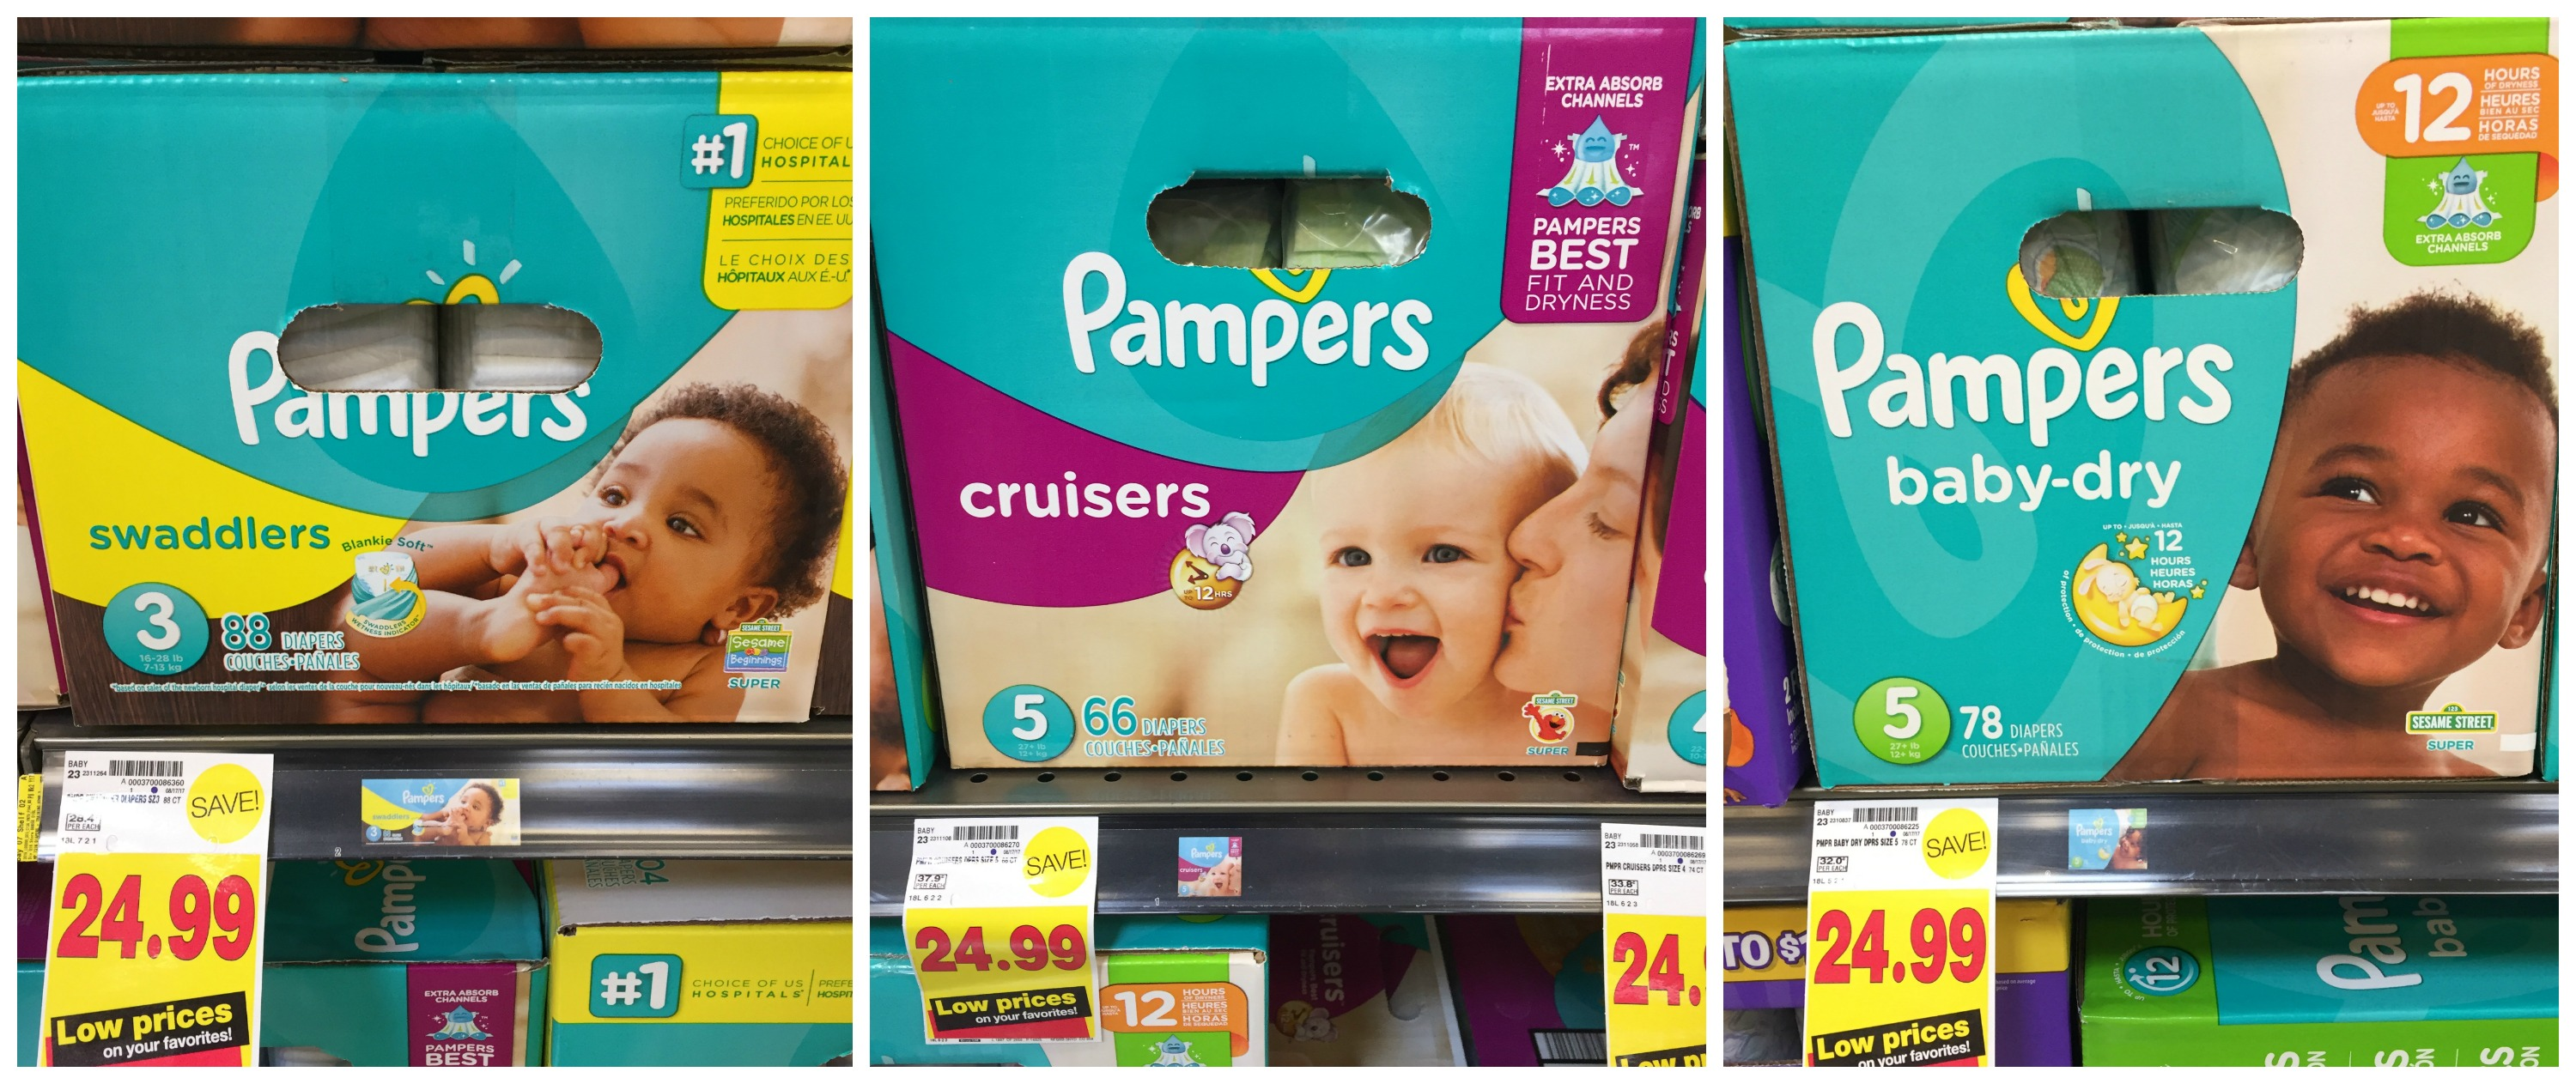 Digital coupons for pampers